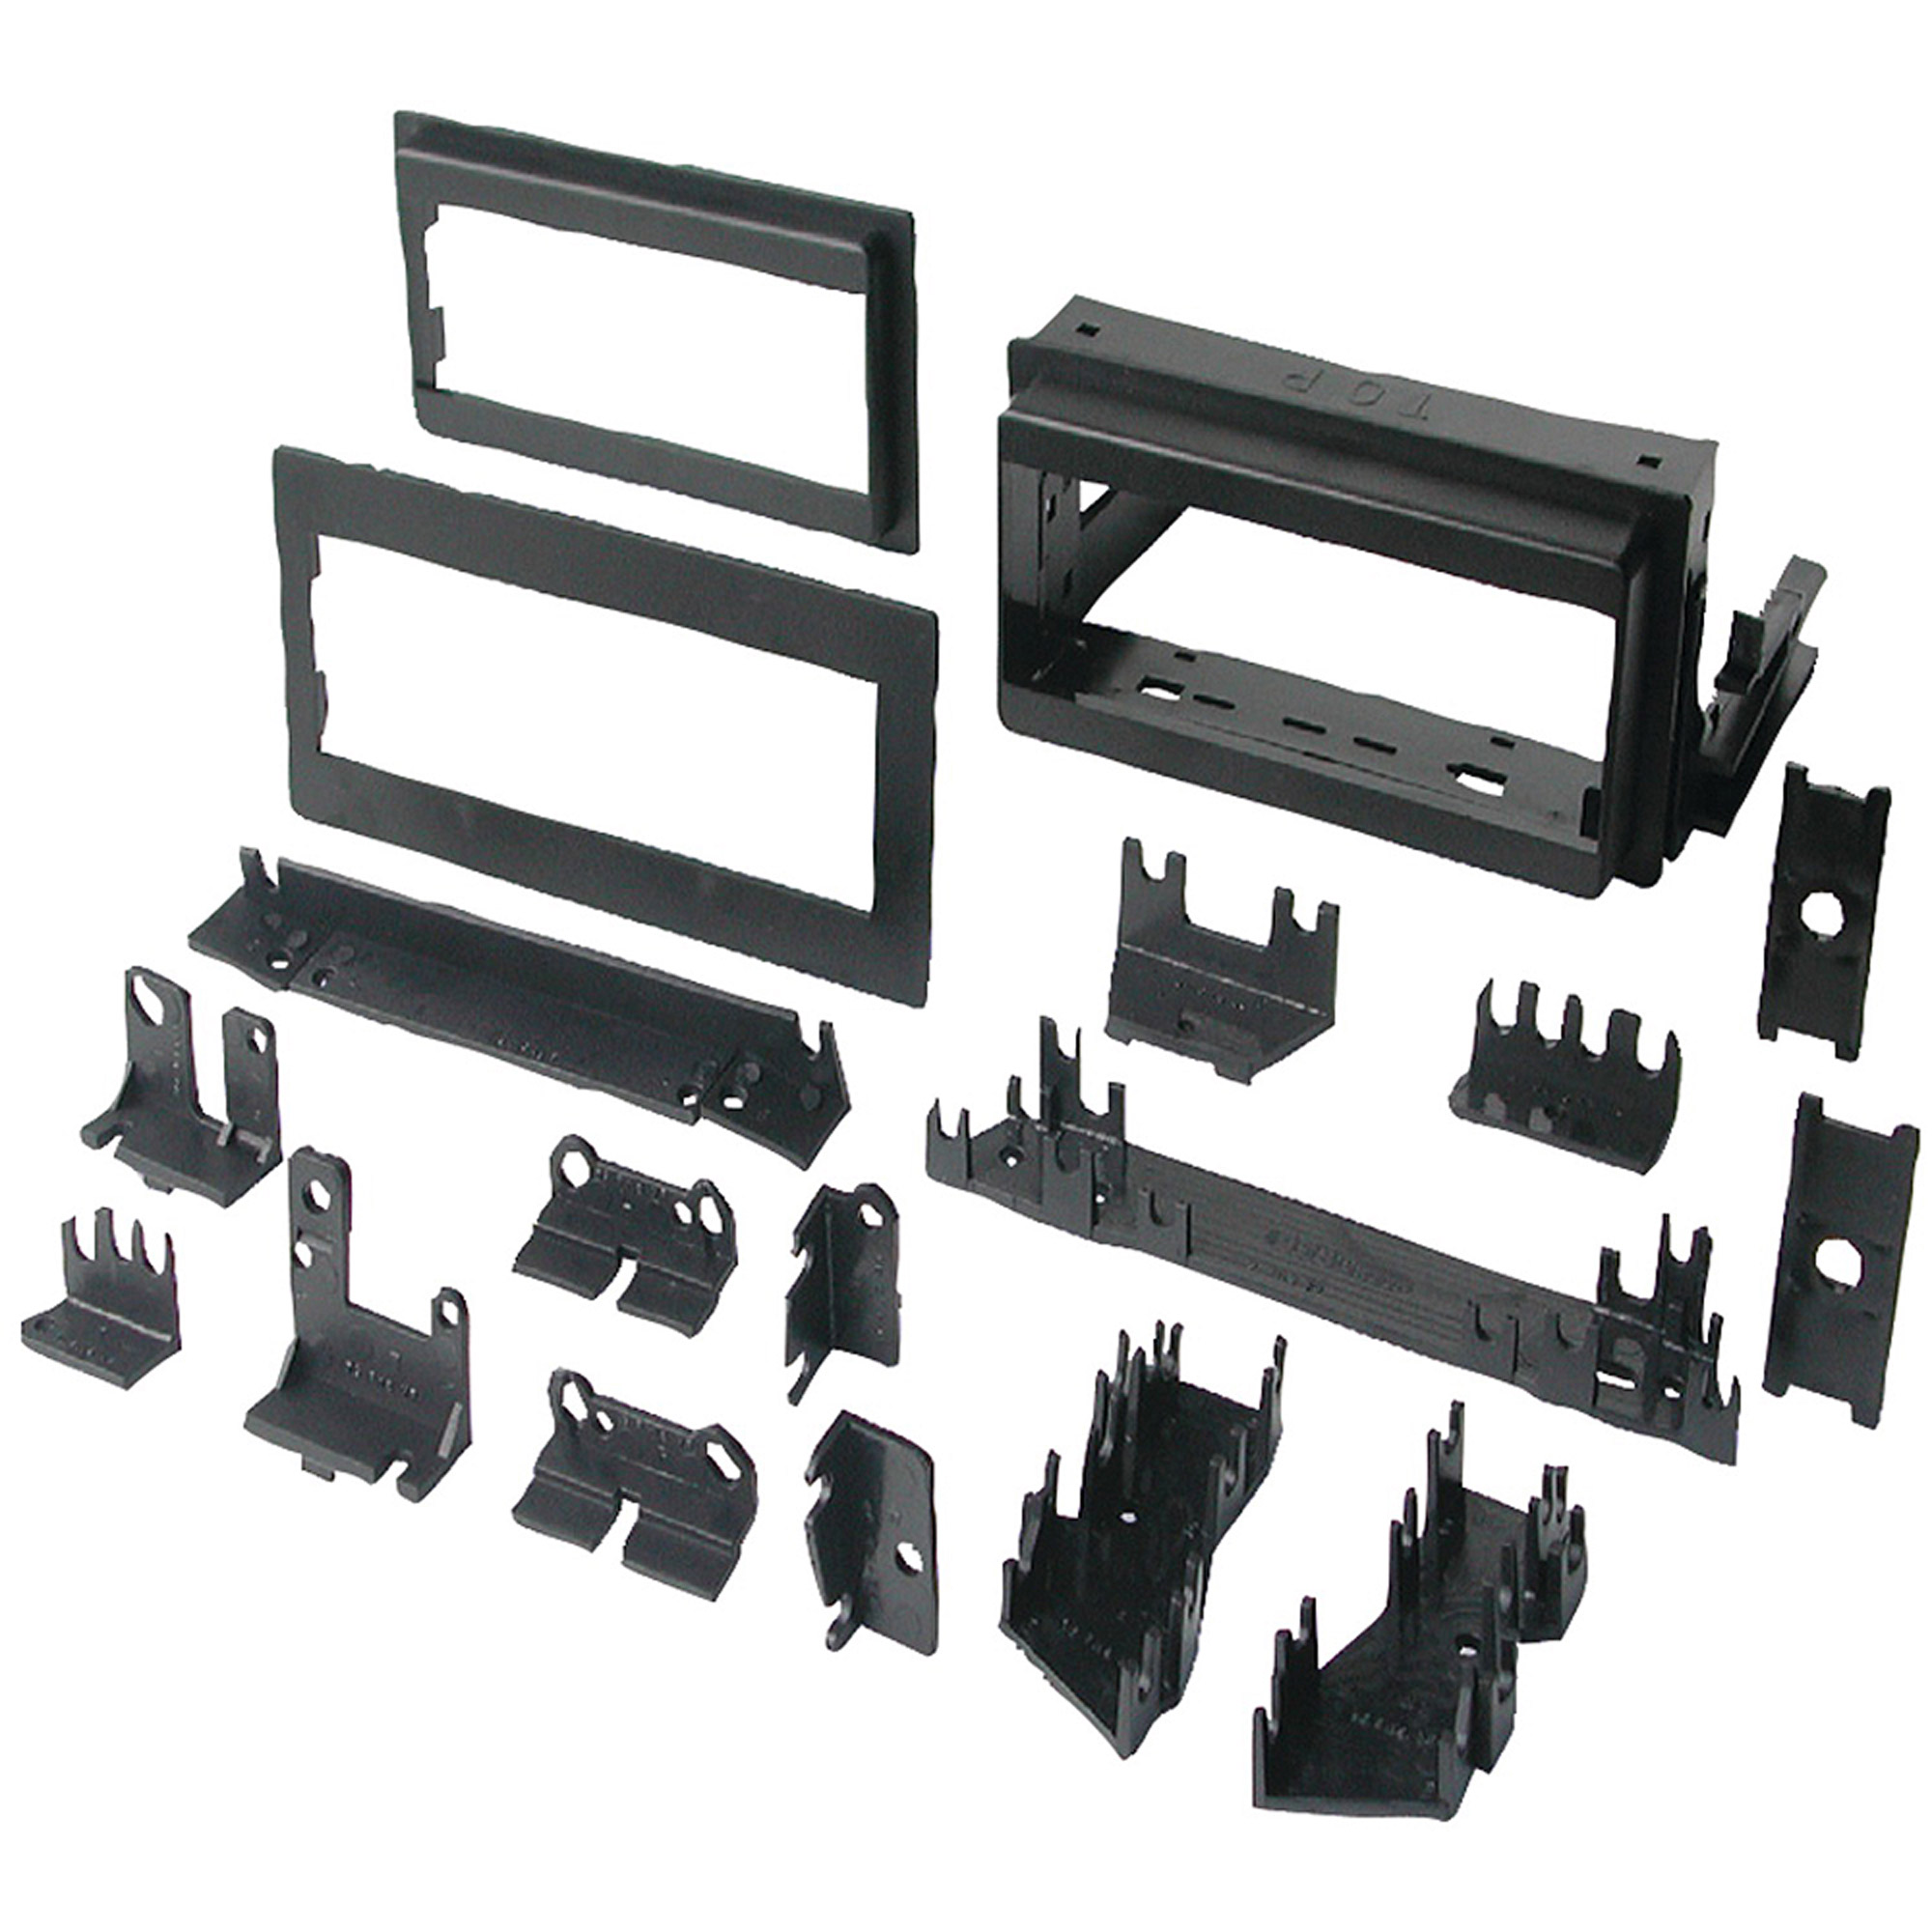 """Best Kits BKGM4 In-Dash Installation Kit (GM Universal 1982-2003 with Factory Brackets and Flat, 0.5"""" and 1"""" Trim Plates Single-DIN)"""